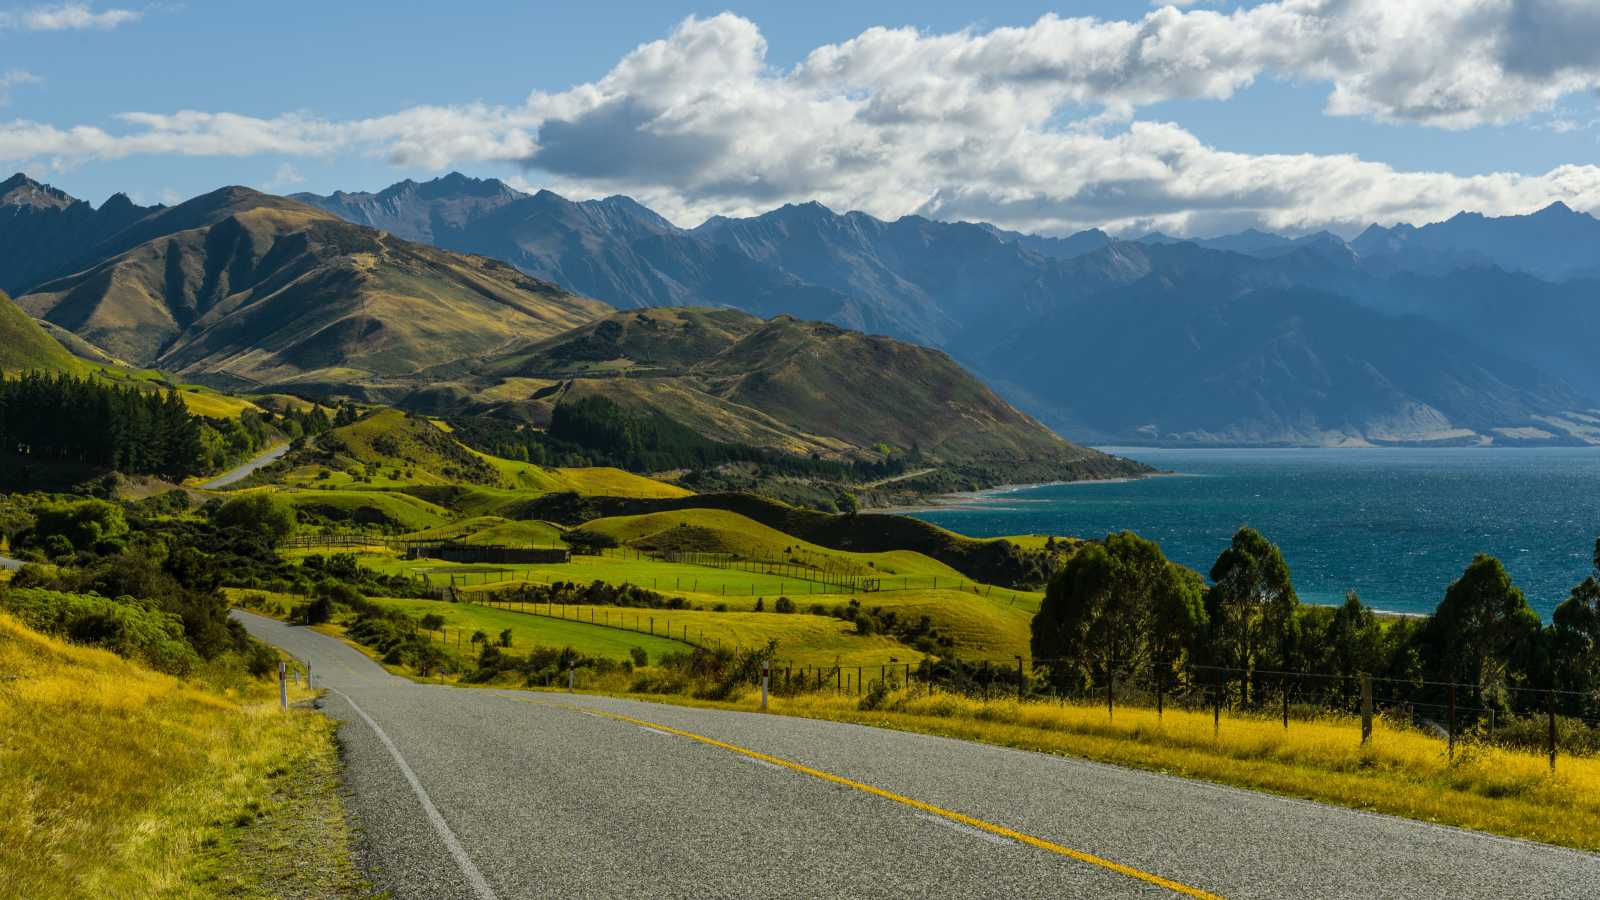 View of a highway on New Zealand's South Island, leading to green hills lined by the ocean - discover more on a tour of New Zealand.